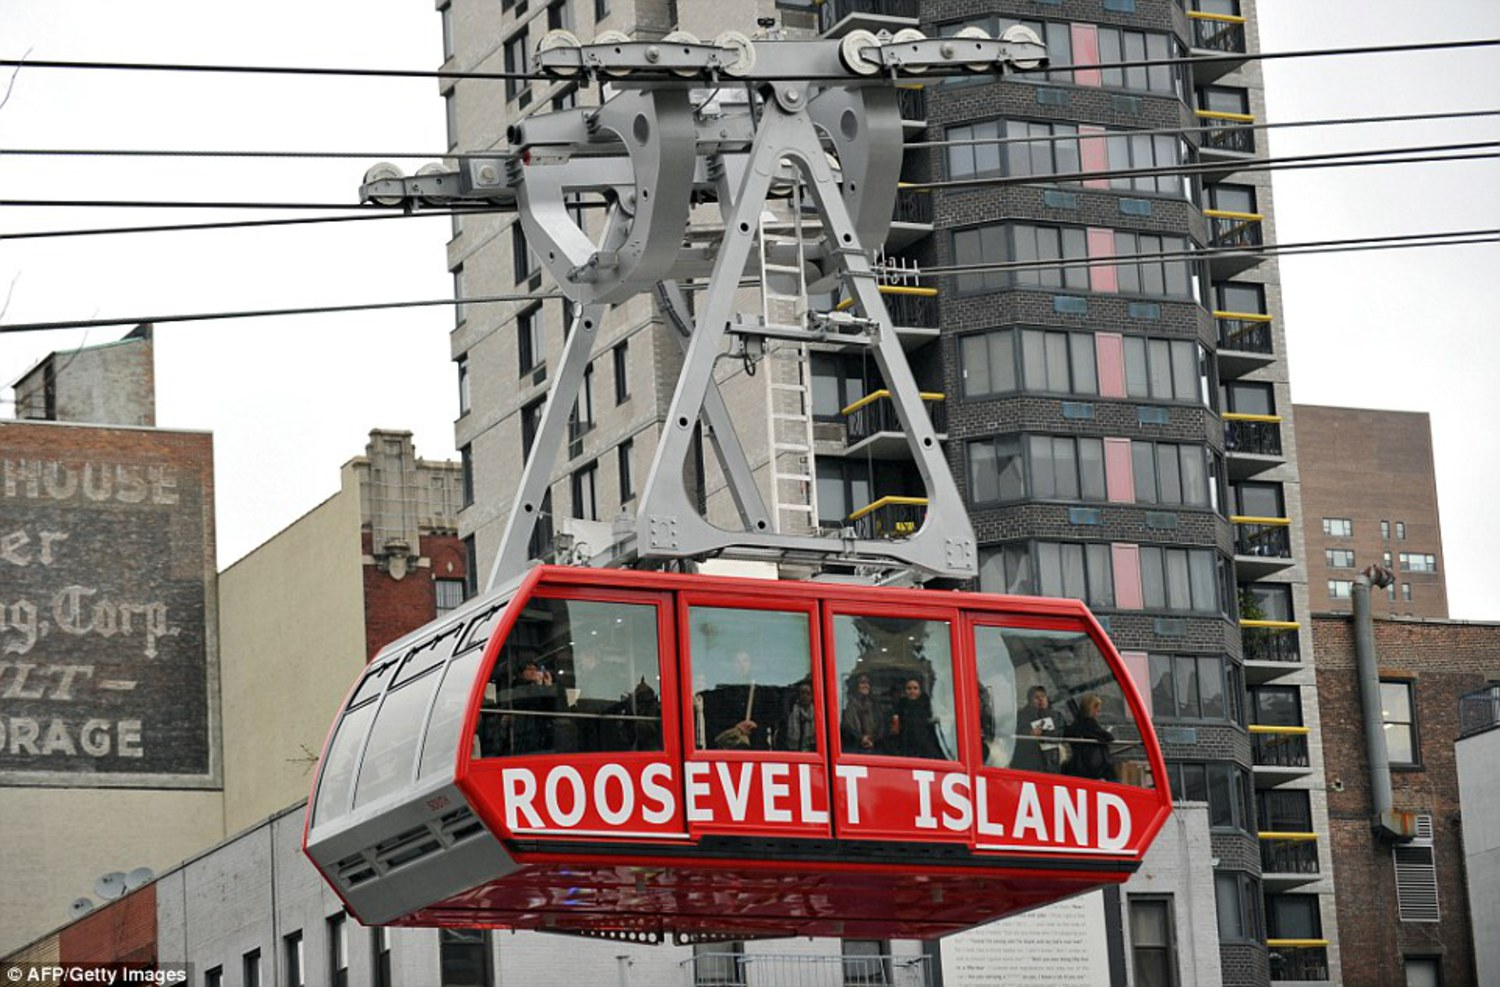 The Roosevelt Island tram is one way to get on and off the island. The island also has one subway stop